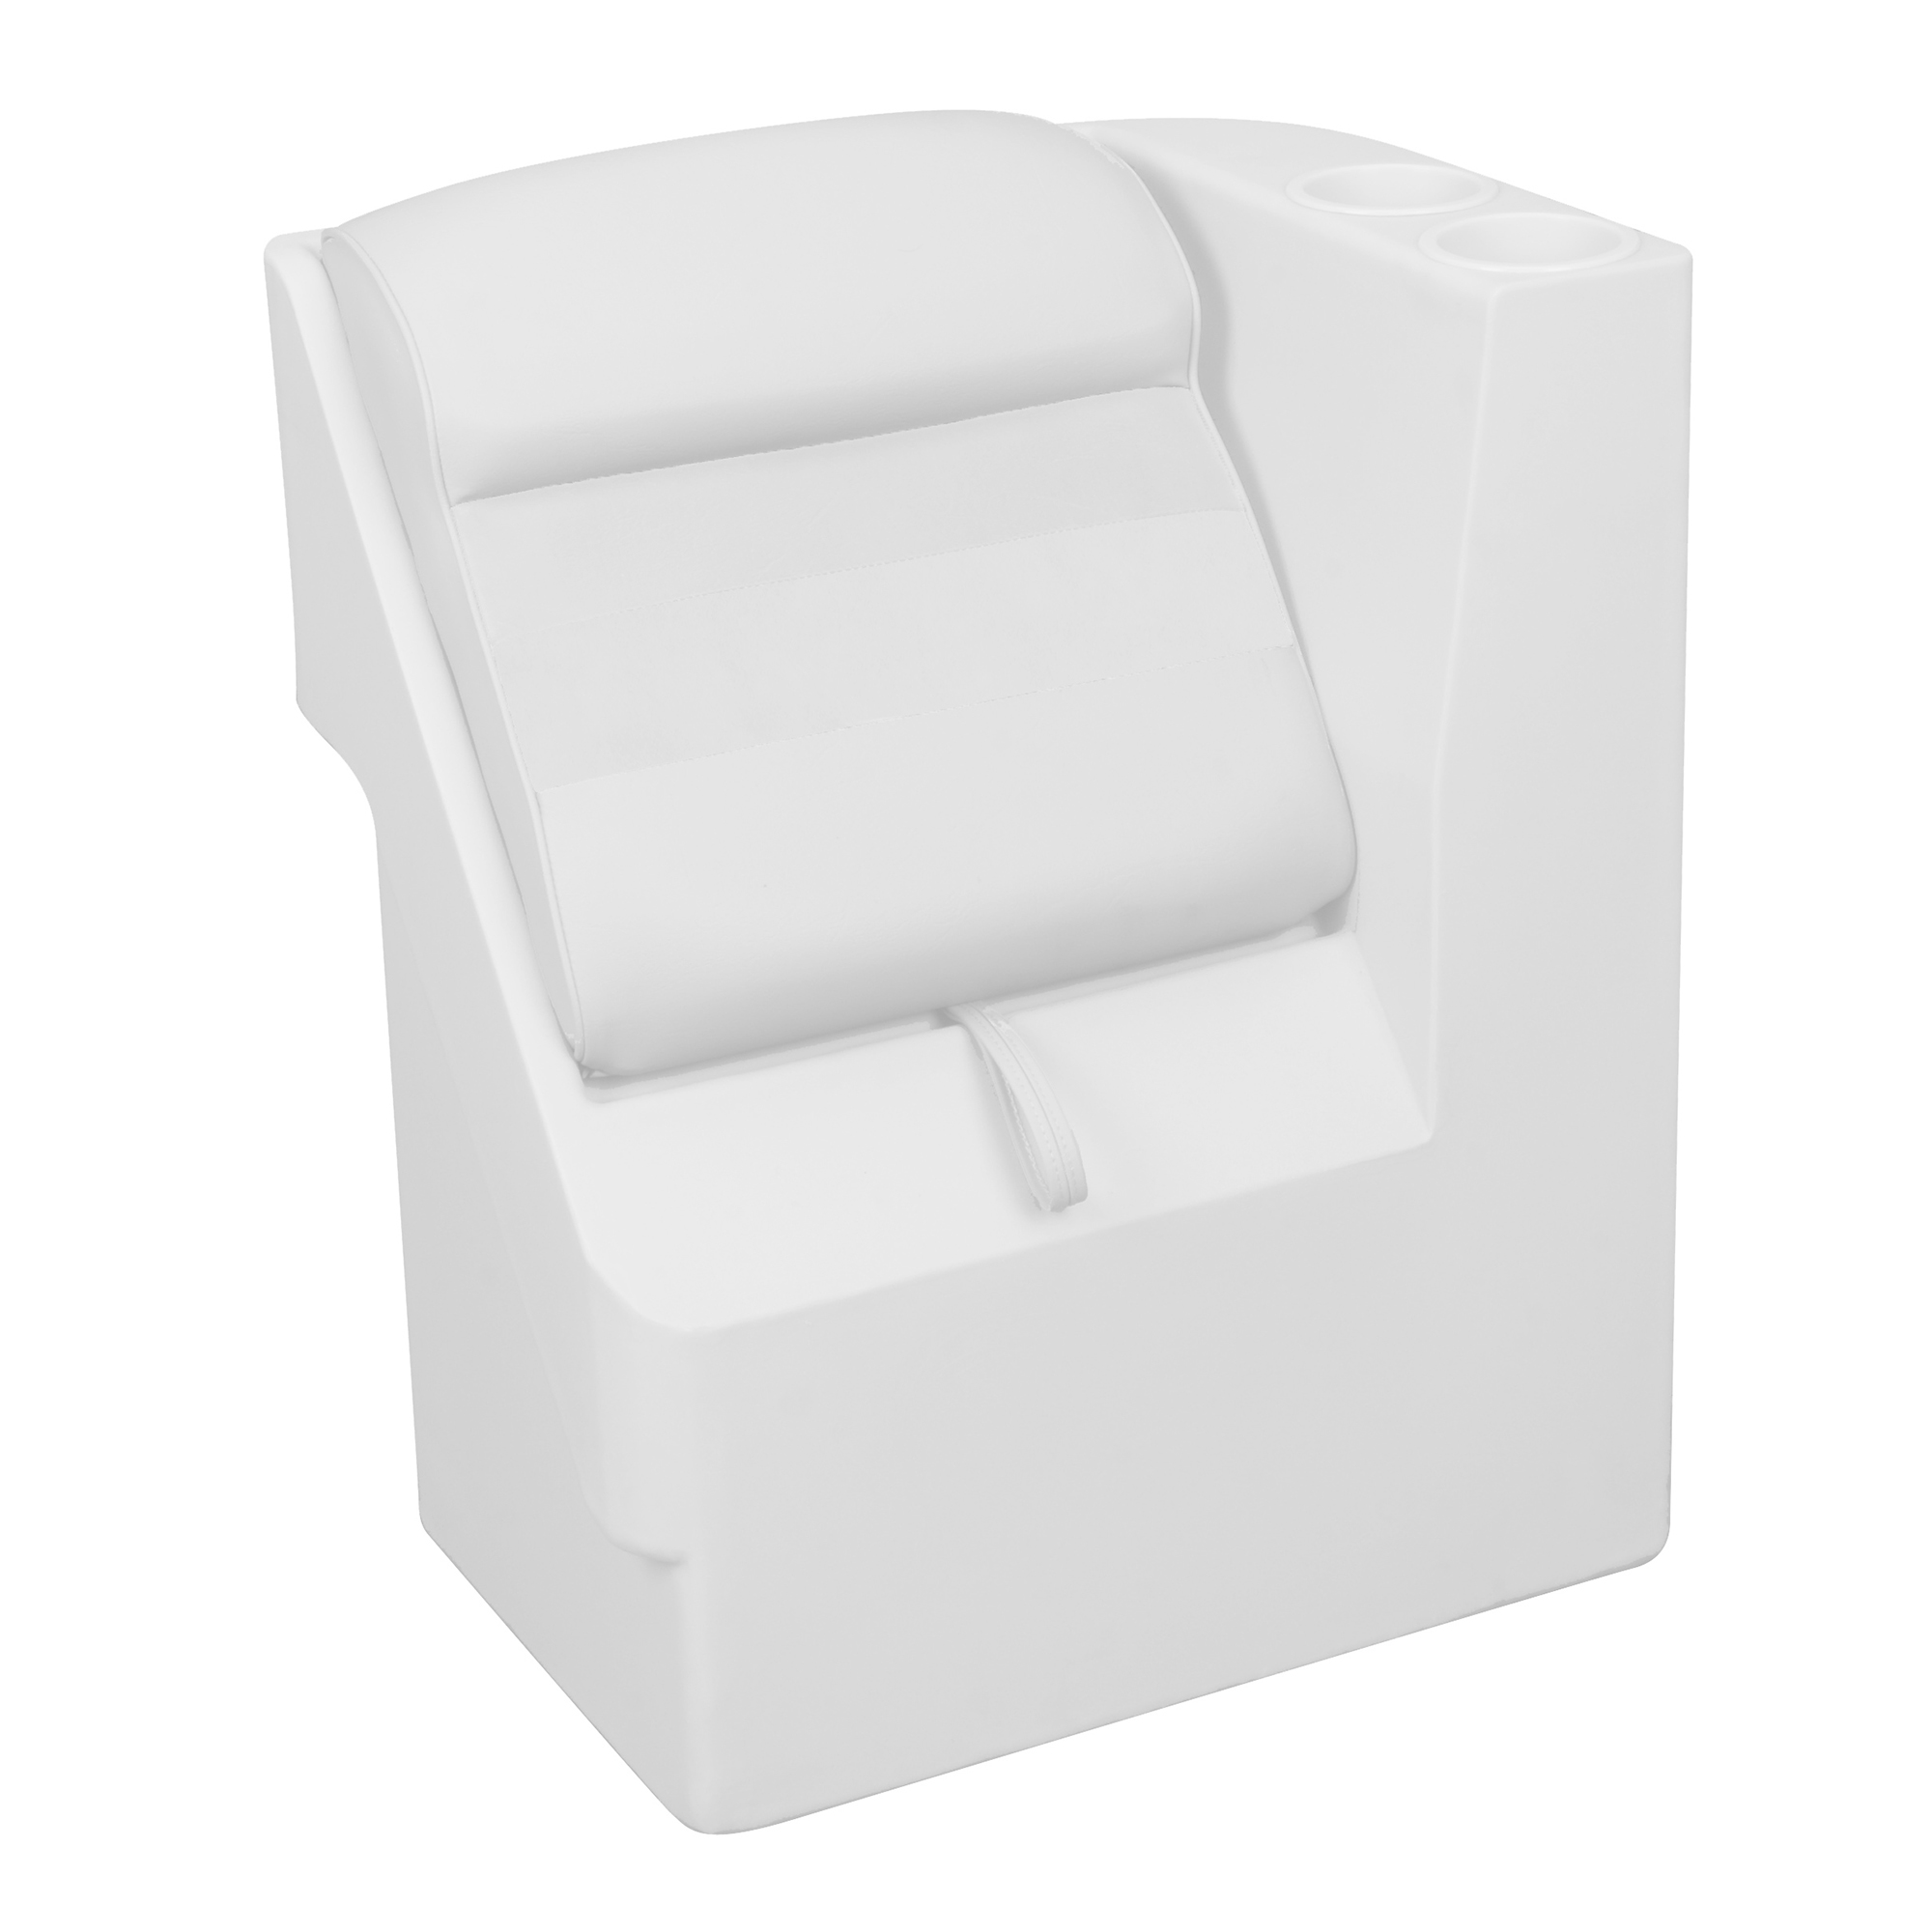 Toonmate Deluxe Lean-Back Lounge Seats